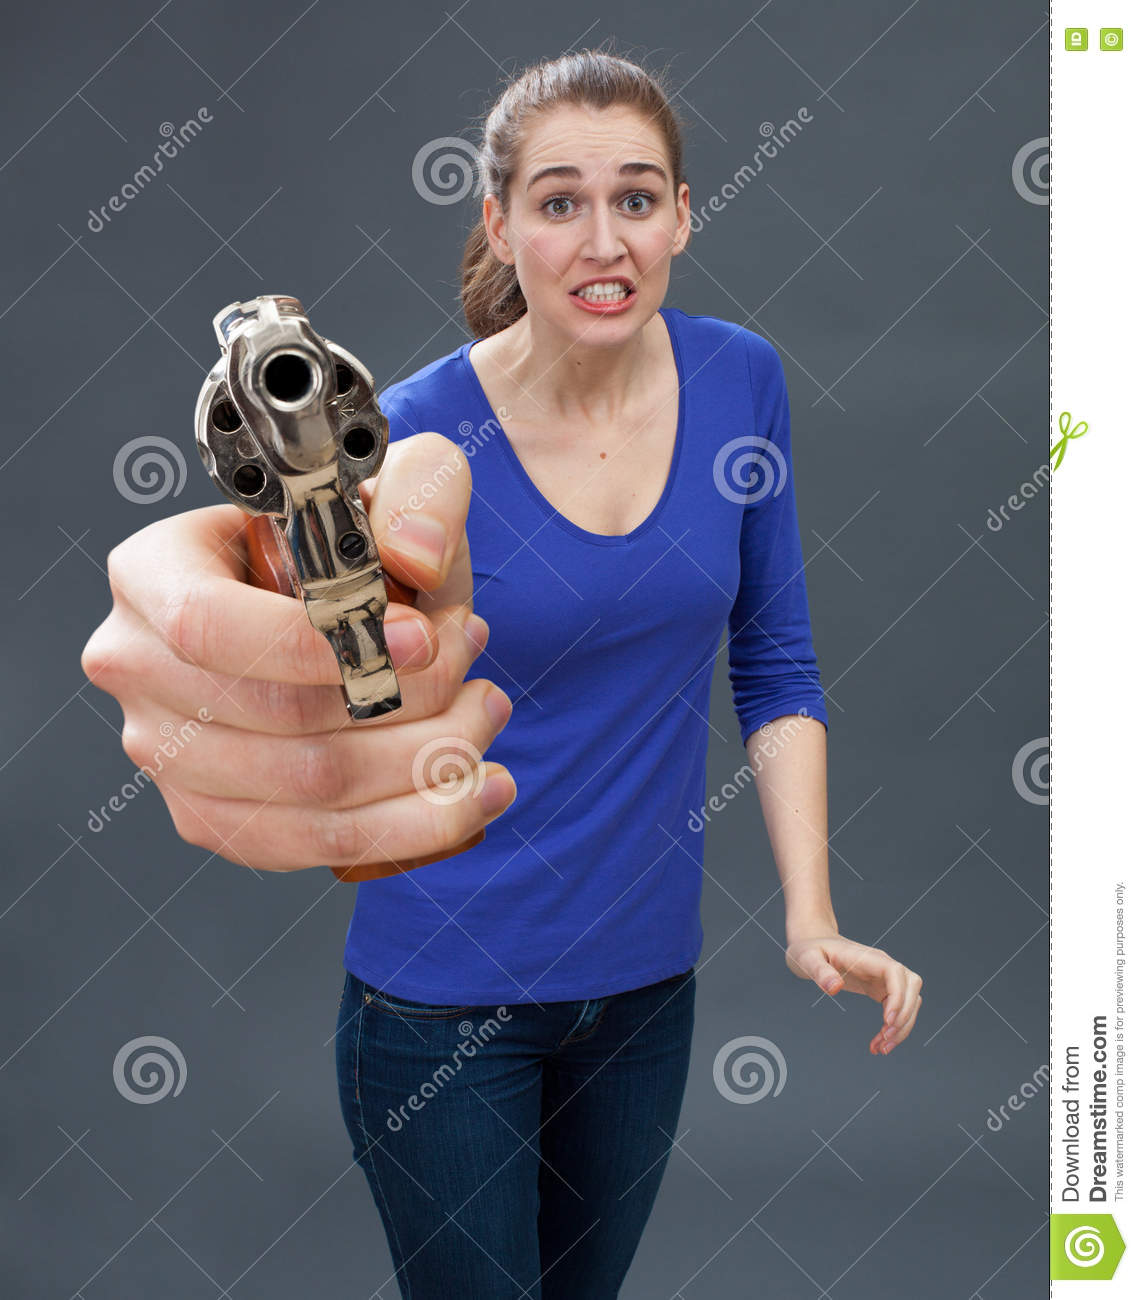 Scared young woman with gun expressing anxiety for self-defense